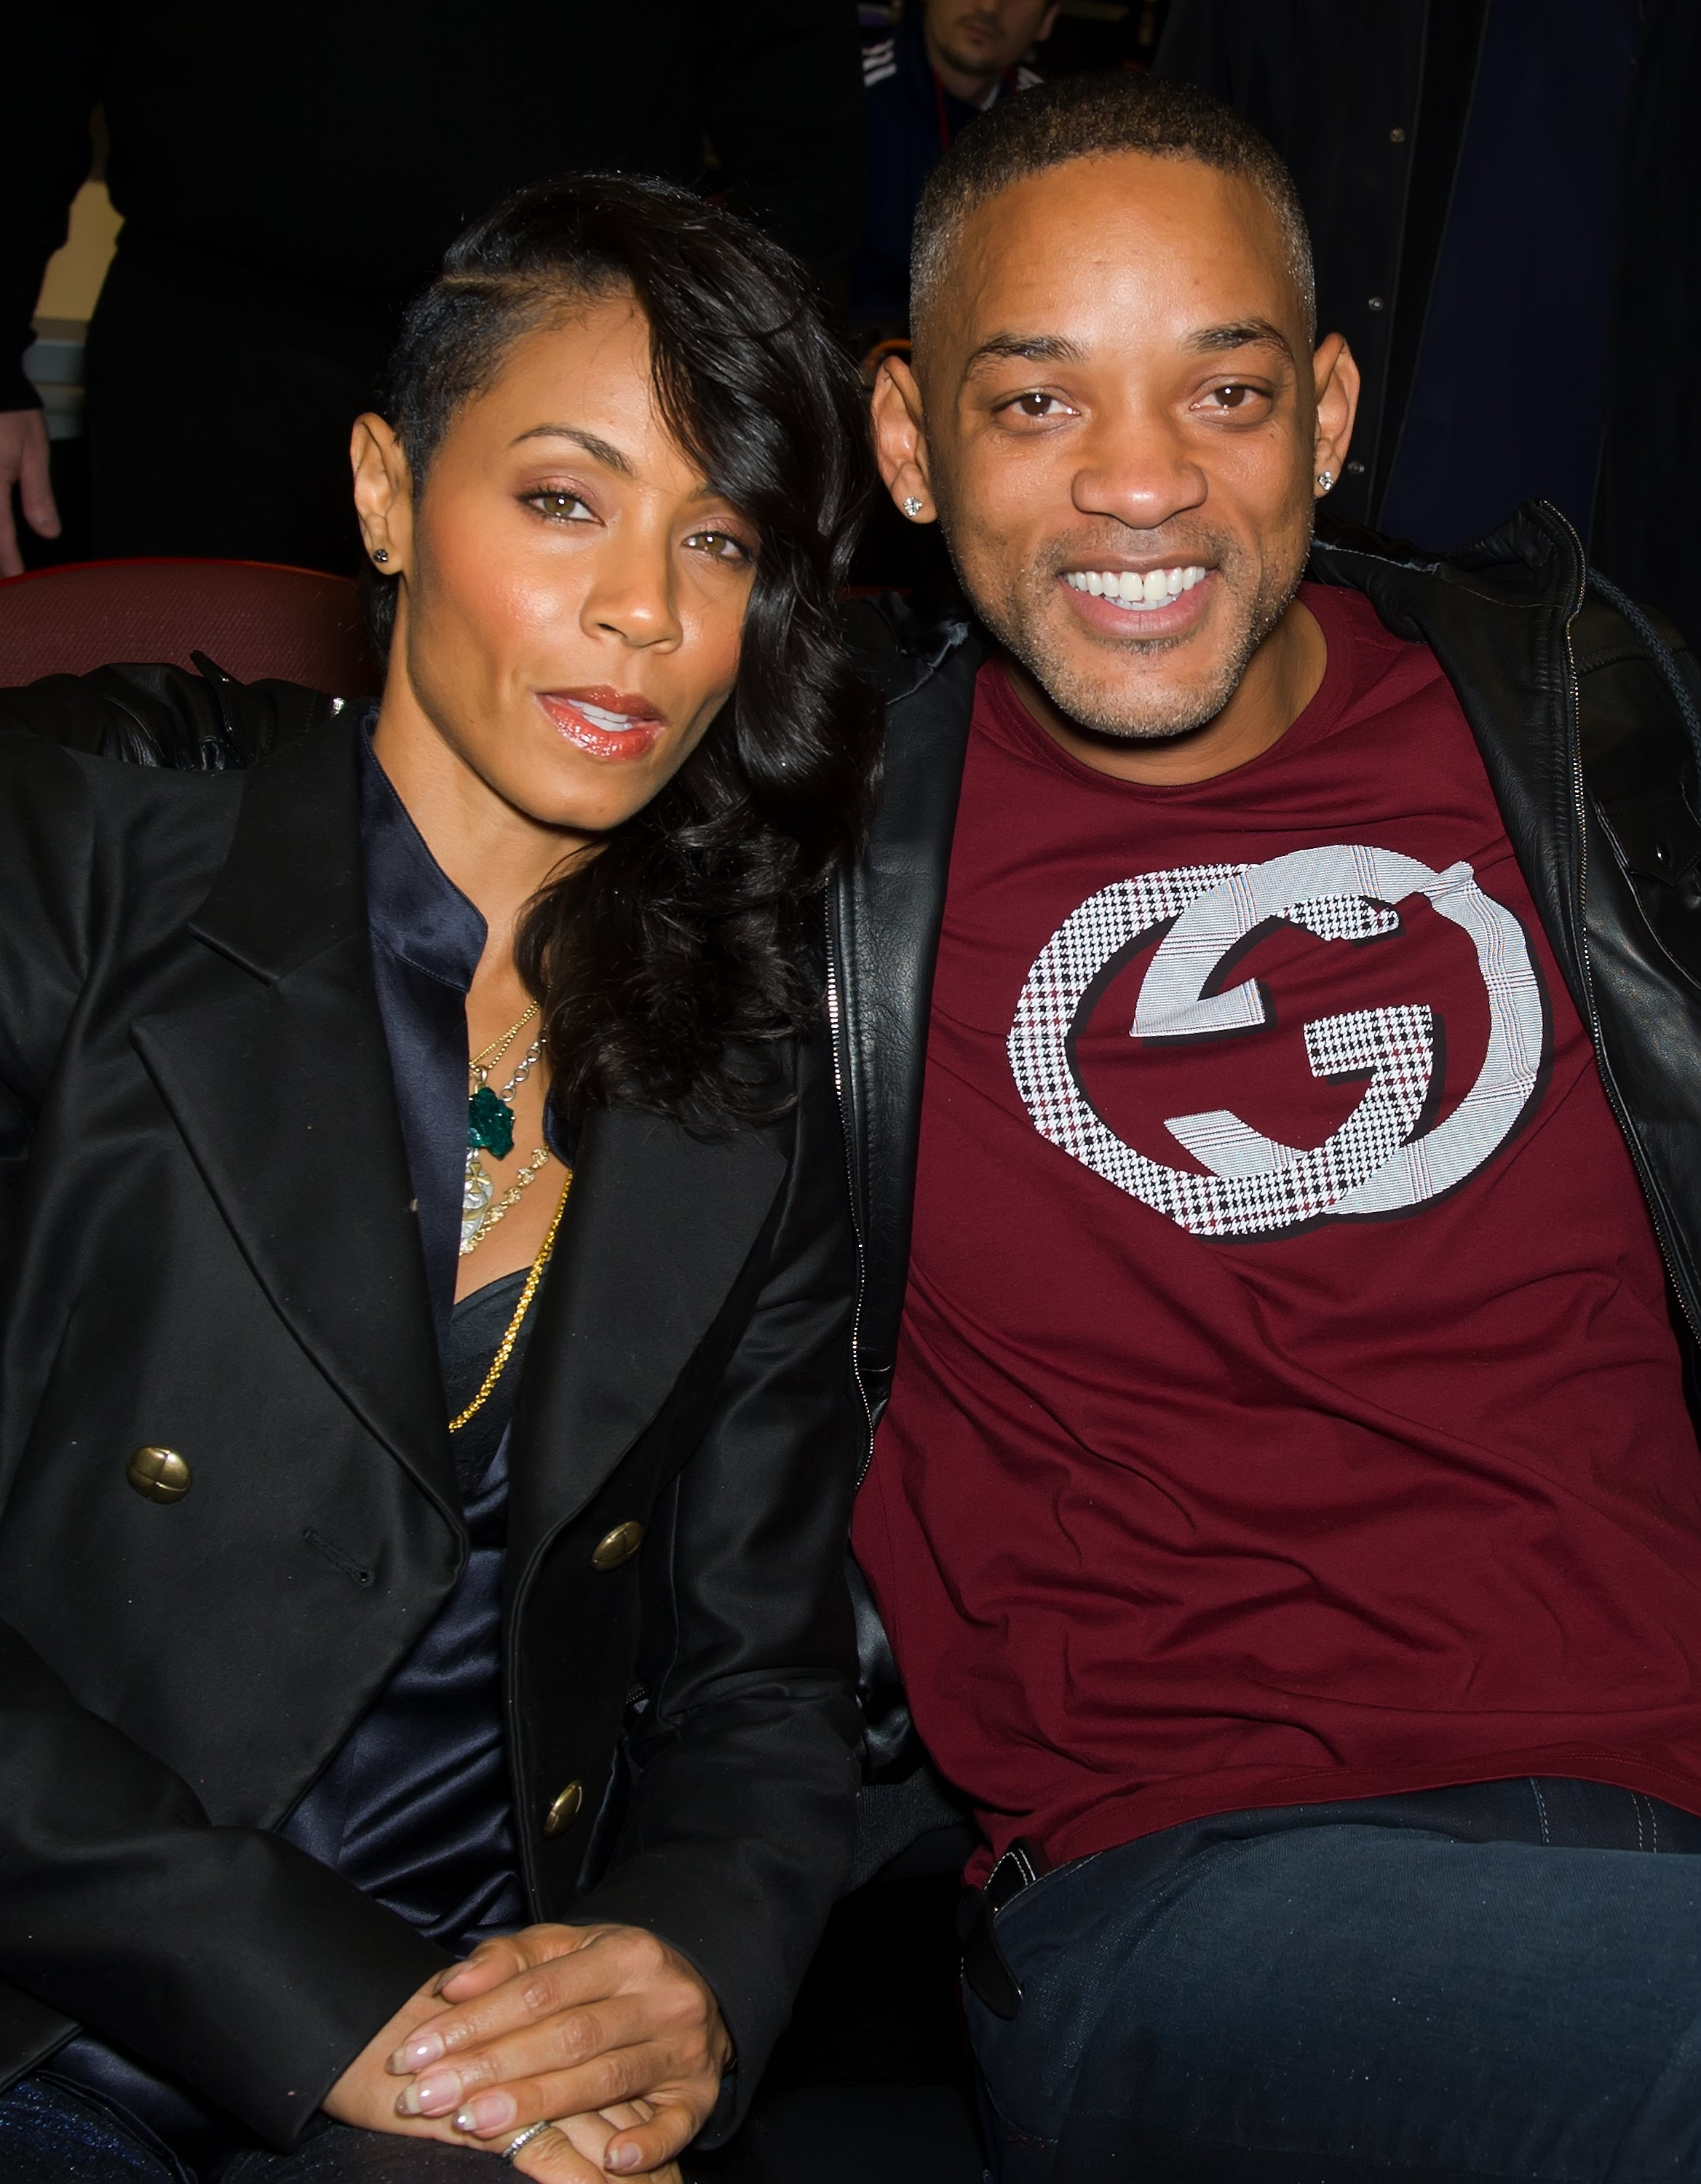 Will Smith and Jada Pinkett-Smith watching a Philadelphia 76ers game in January 2012. | Photo: Getty Images